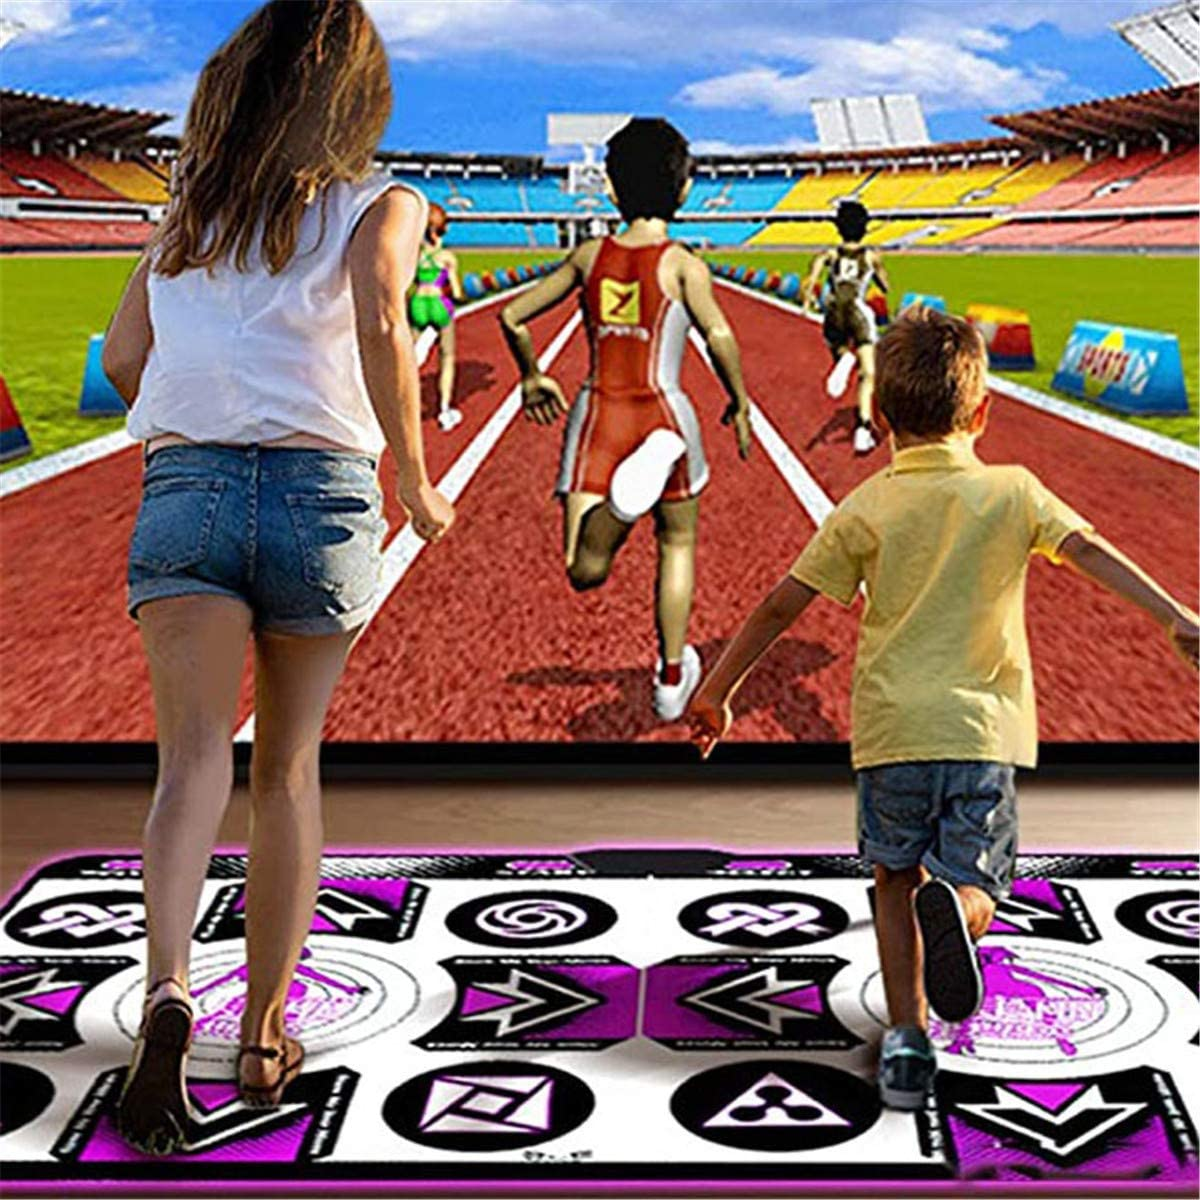 Dance Game for Kids Boys /& Girls Dance Mat Pad for PC TV Household Game,Yoga,Dance,Fitness Body Building Multi-Function Games And Levels Dancing Mat-English Version,Single m Single Person Dance Mat